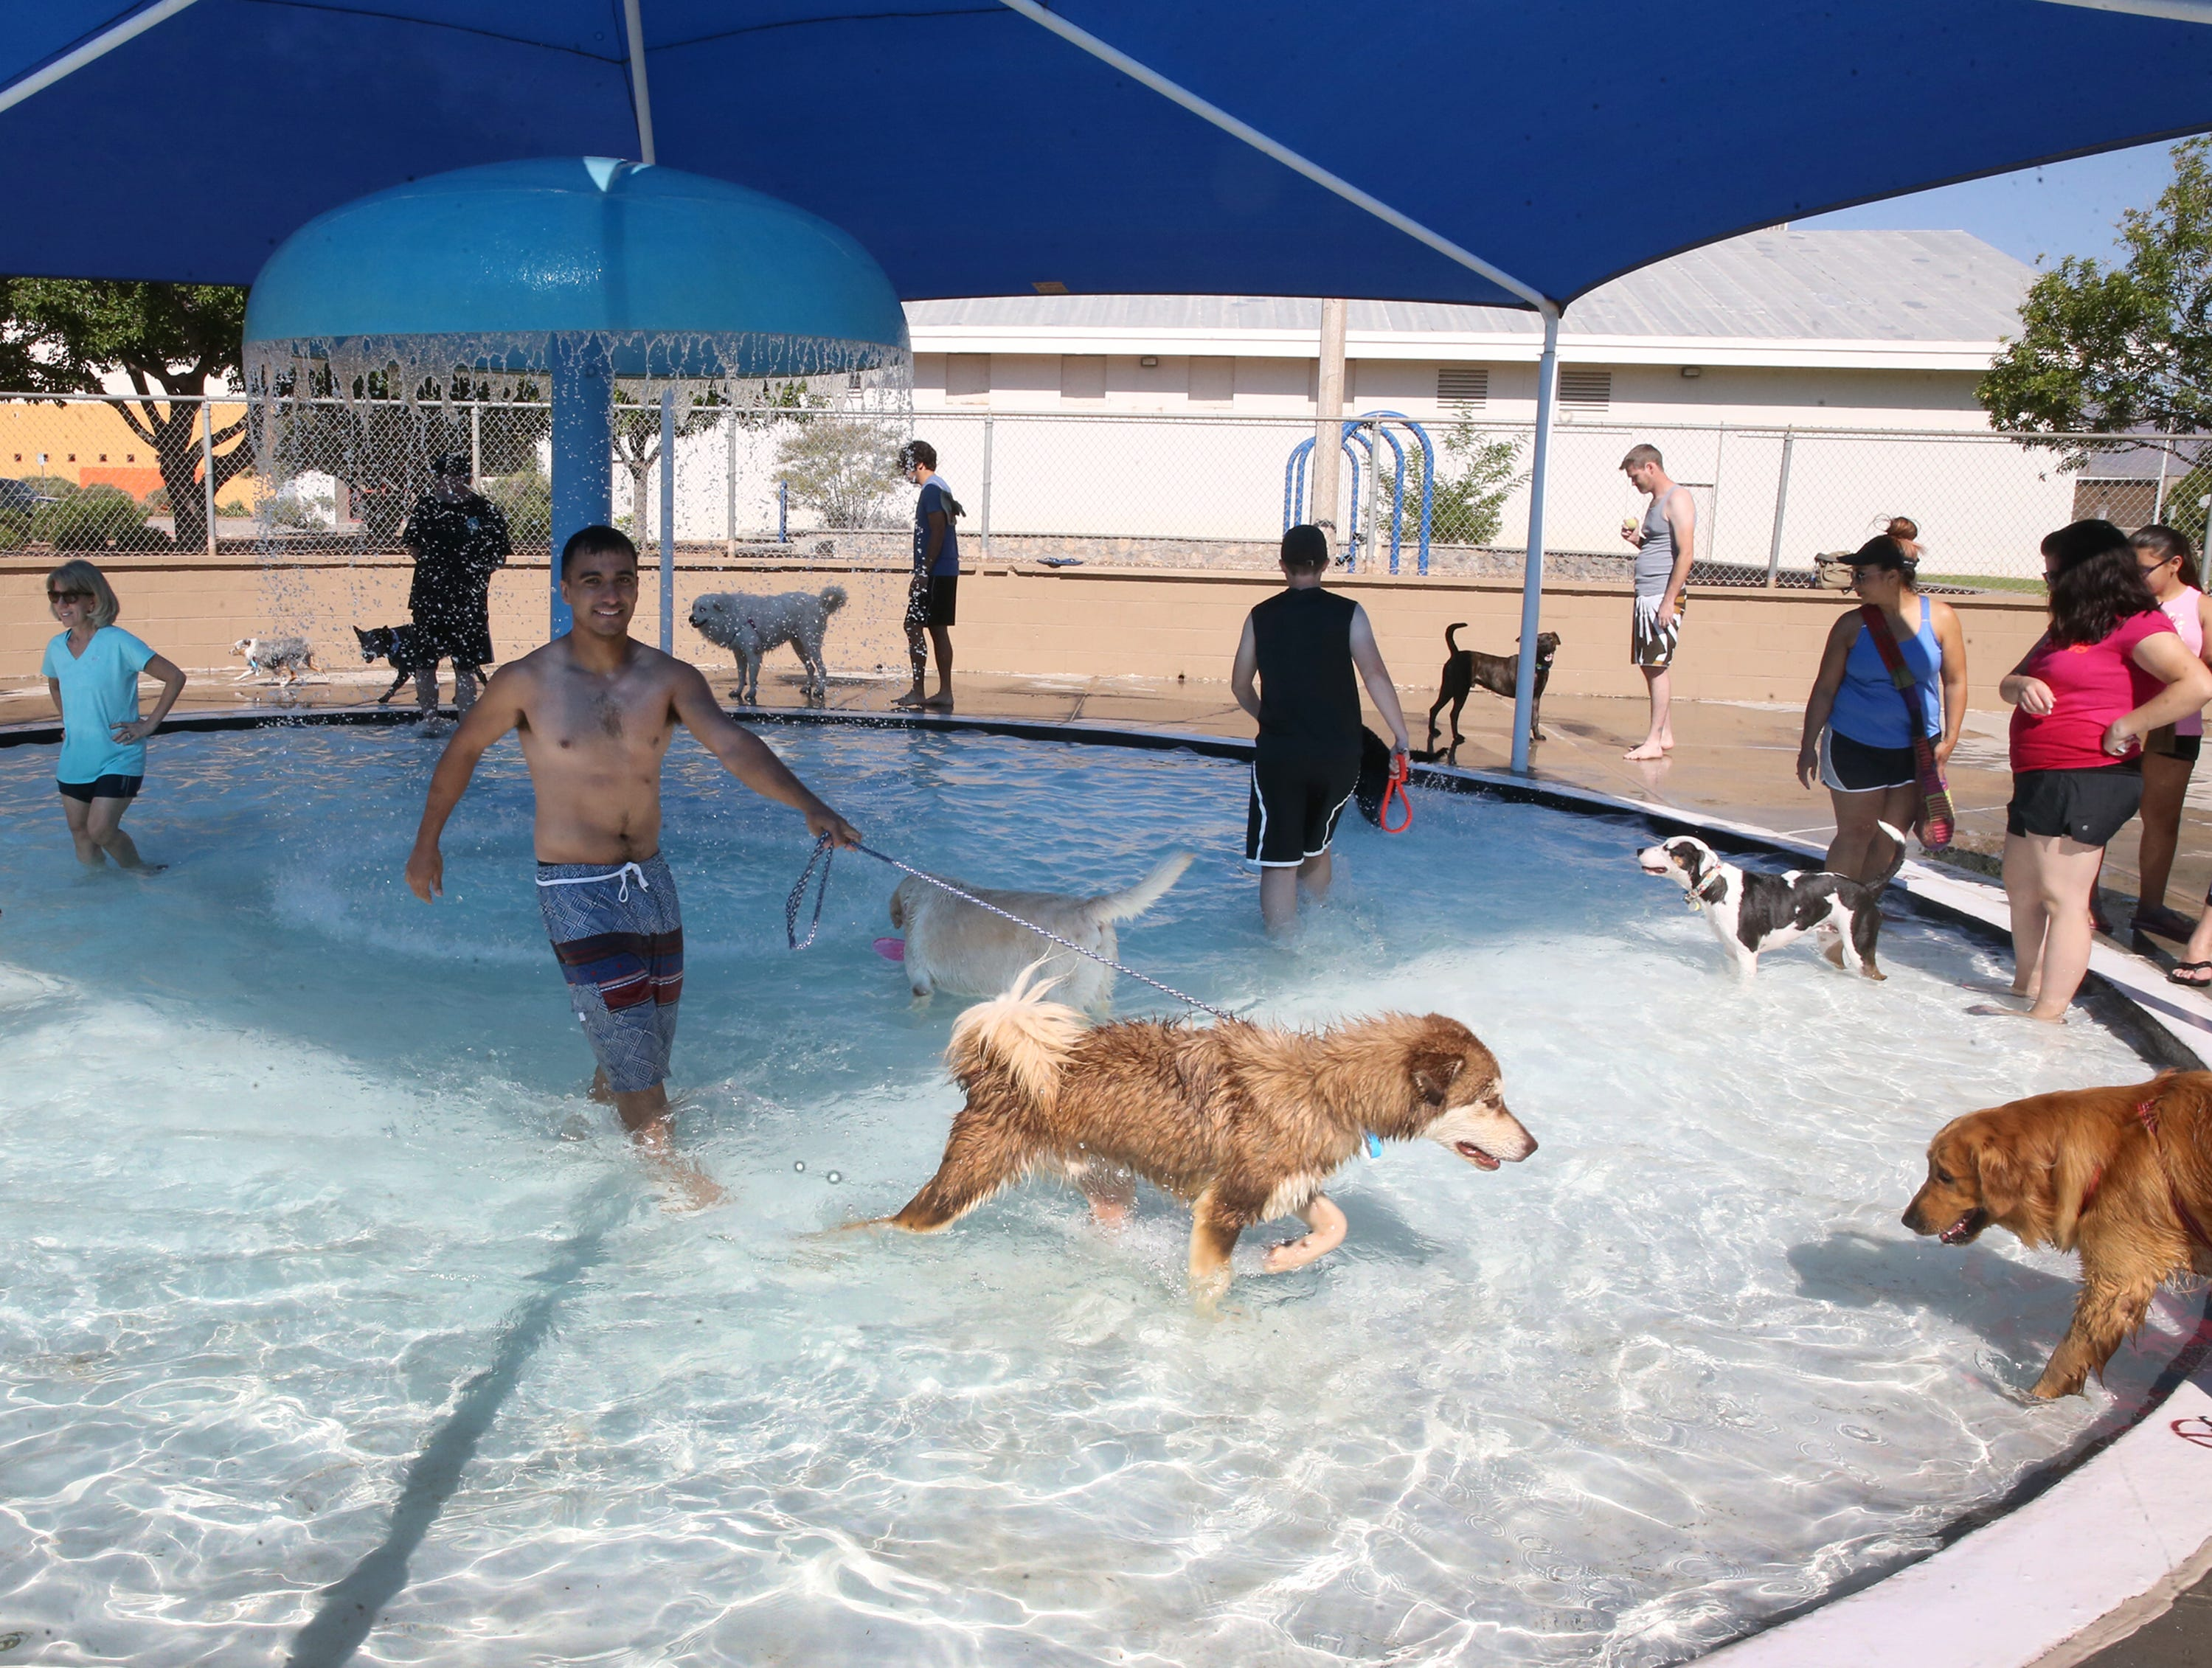 Dogs wading in a shallow pool Sunday.